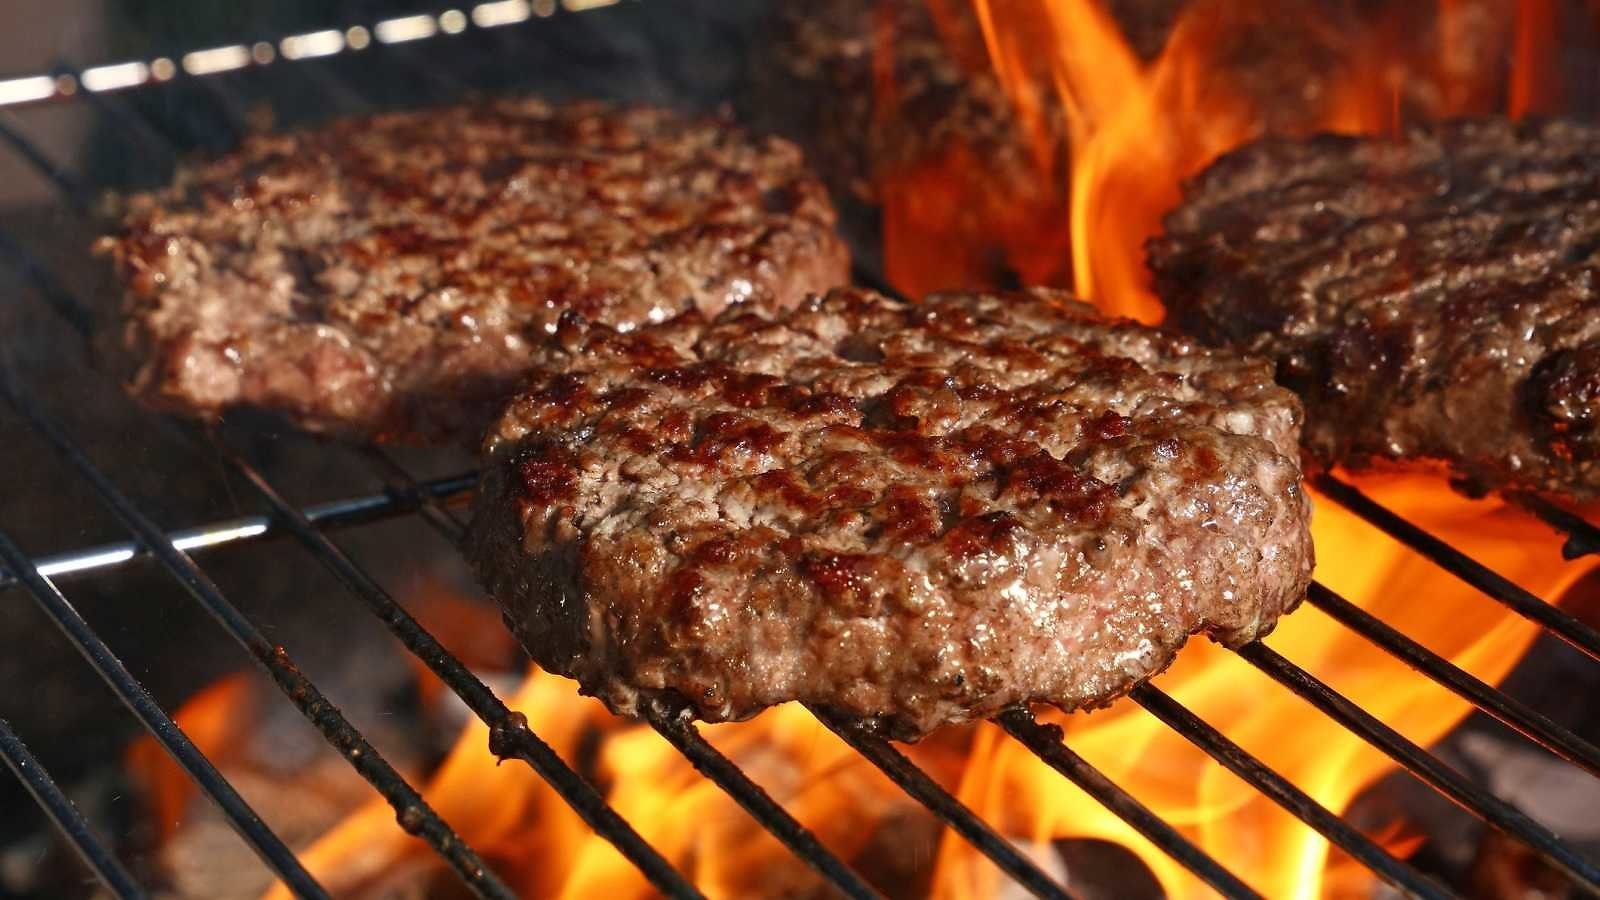 Memorial Day 2020 Food Safety: Coronavirus Isn't The Only Threat At Holiday Weekend Barbecues